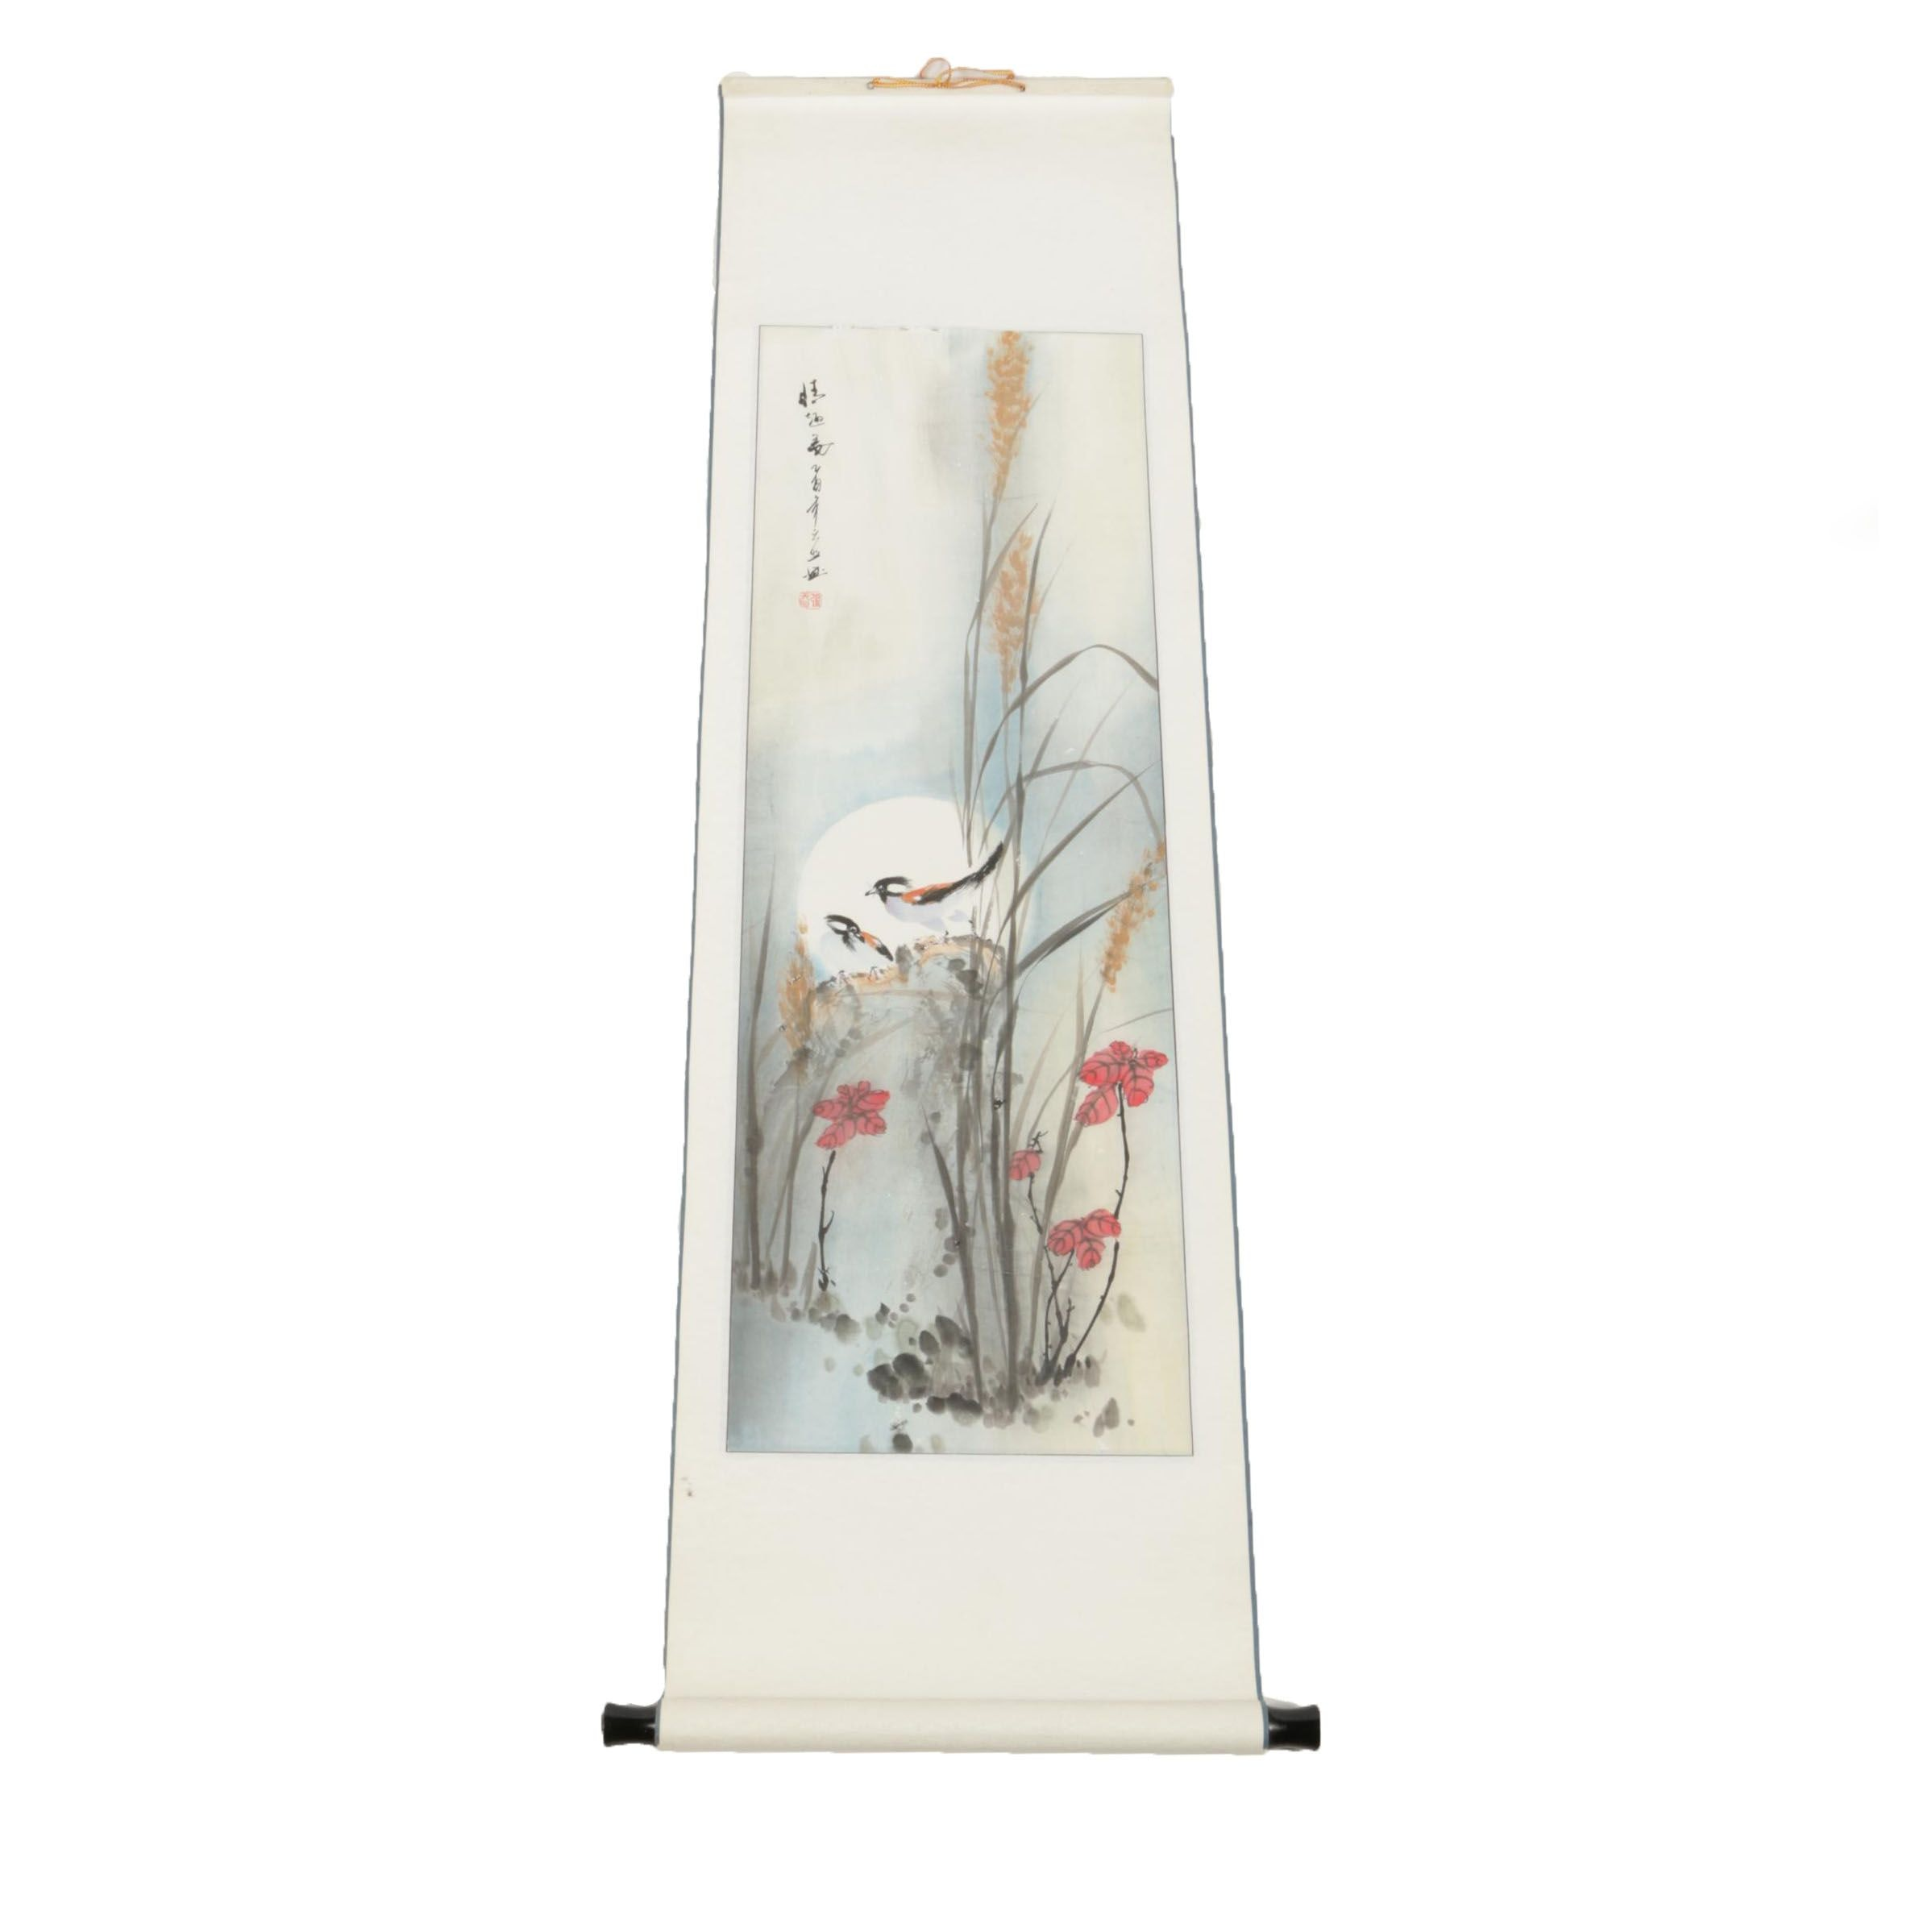 East Asian Watercolor and Ink Painting of Birds and the Moon on Hanging Scroll